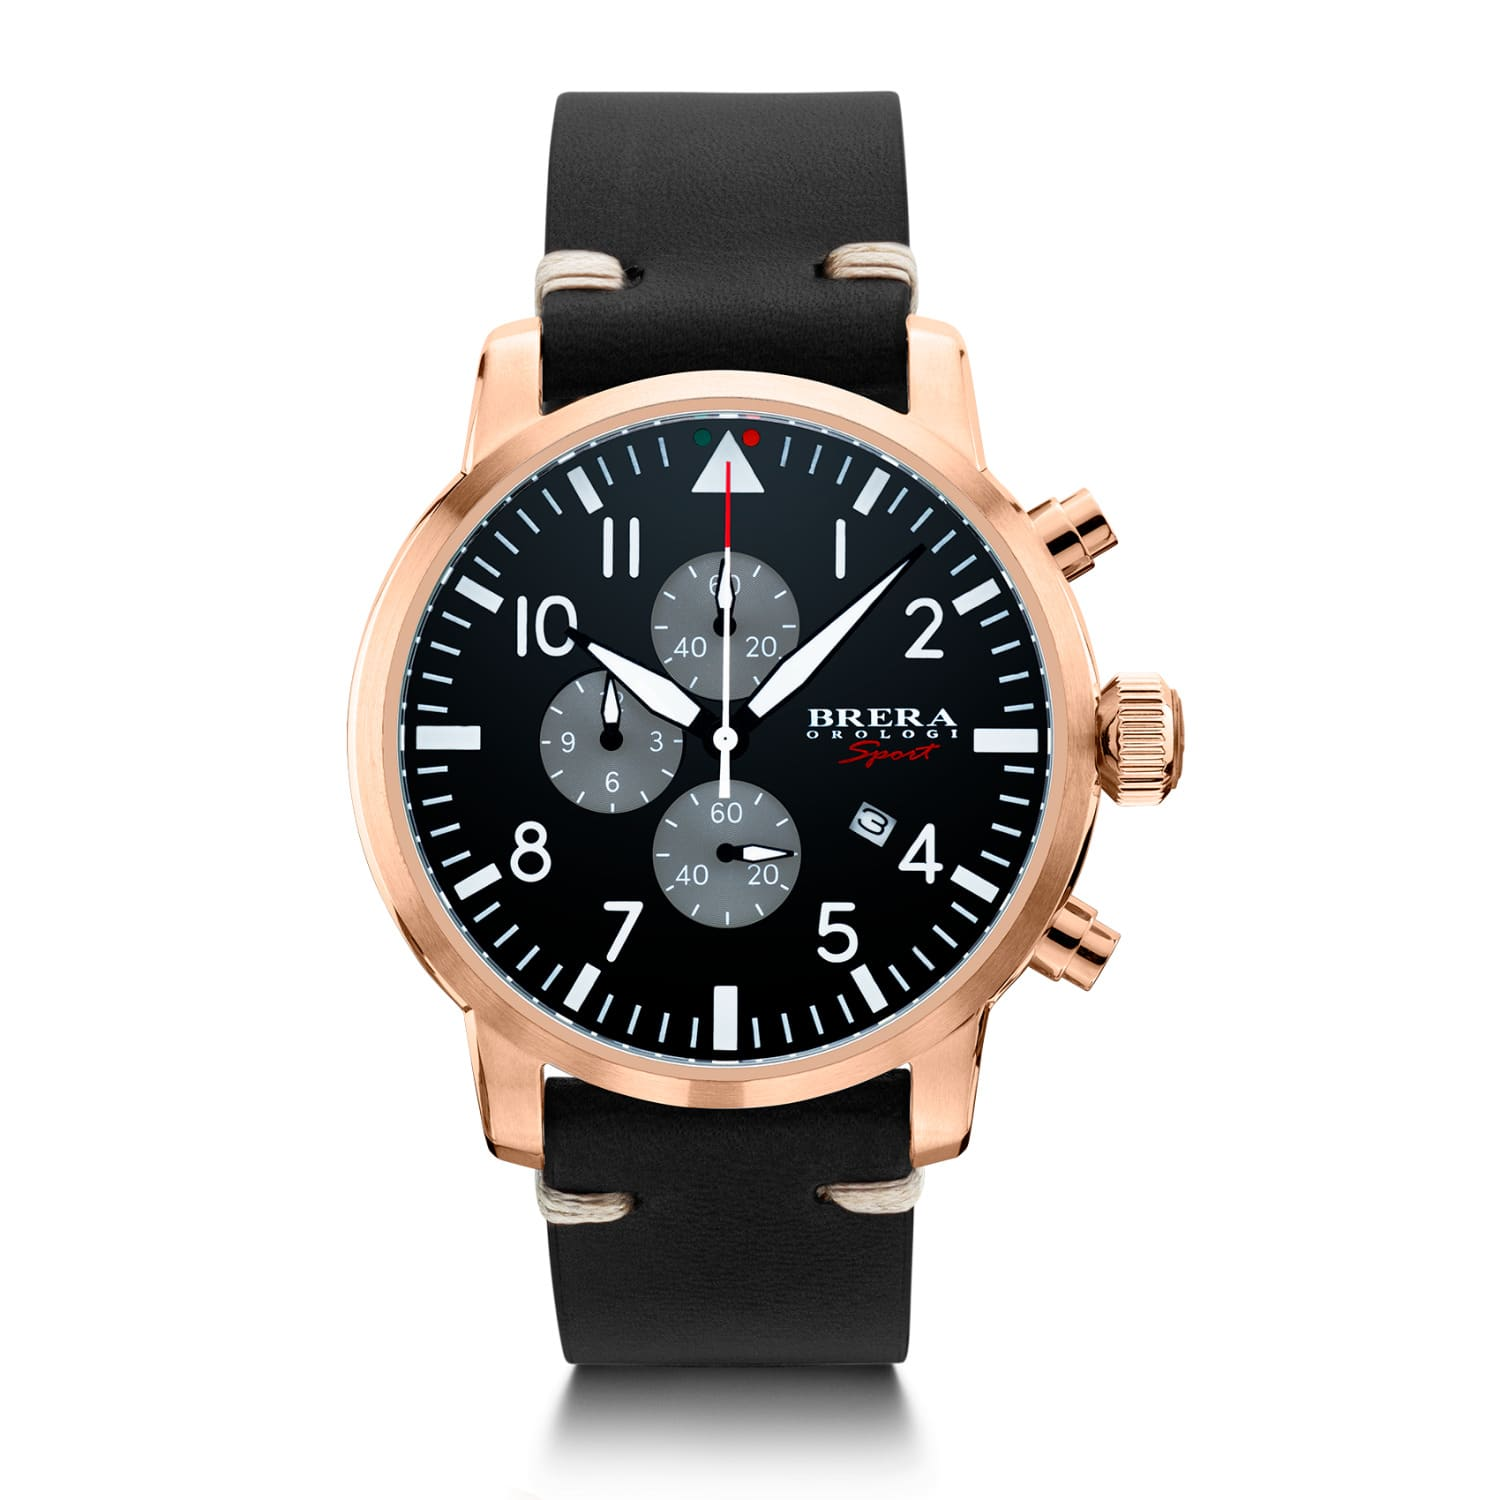 0b4b17662df Brera Sport Mens Tornado Pilot Watch Rose Gold Black Dial Black Leather  Strap